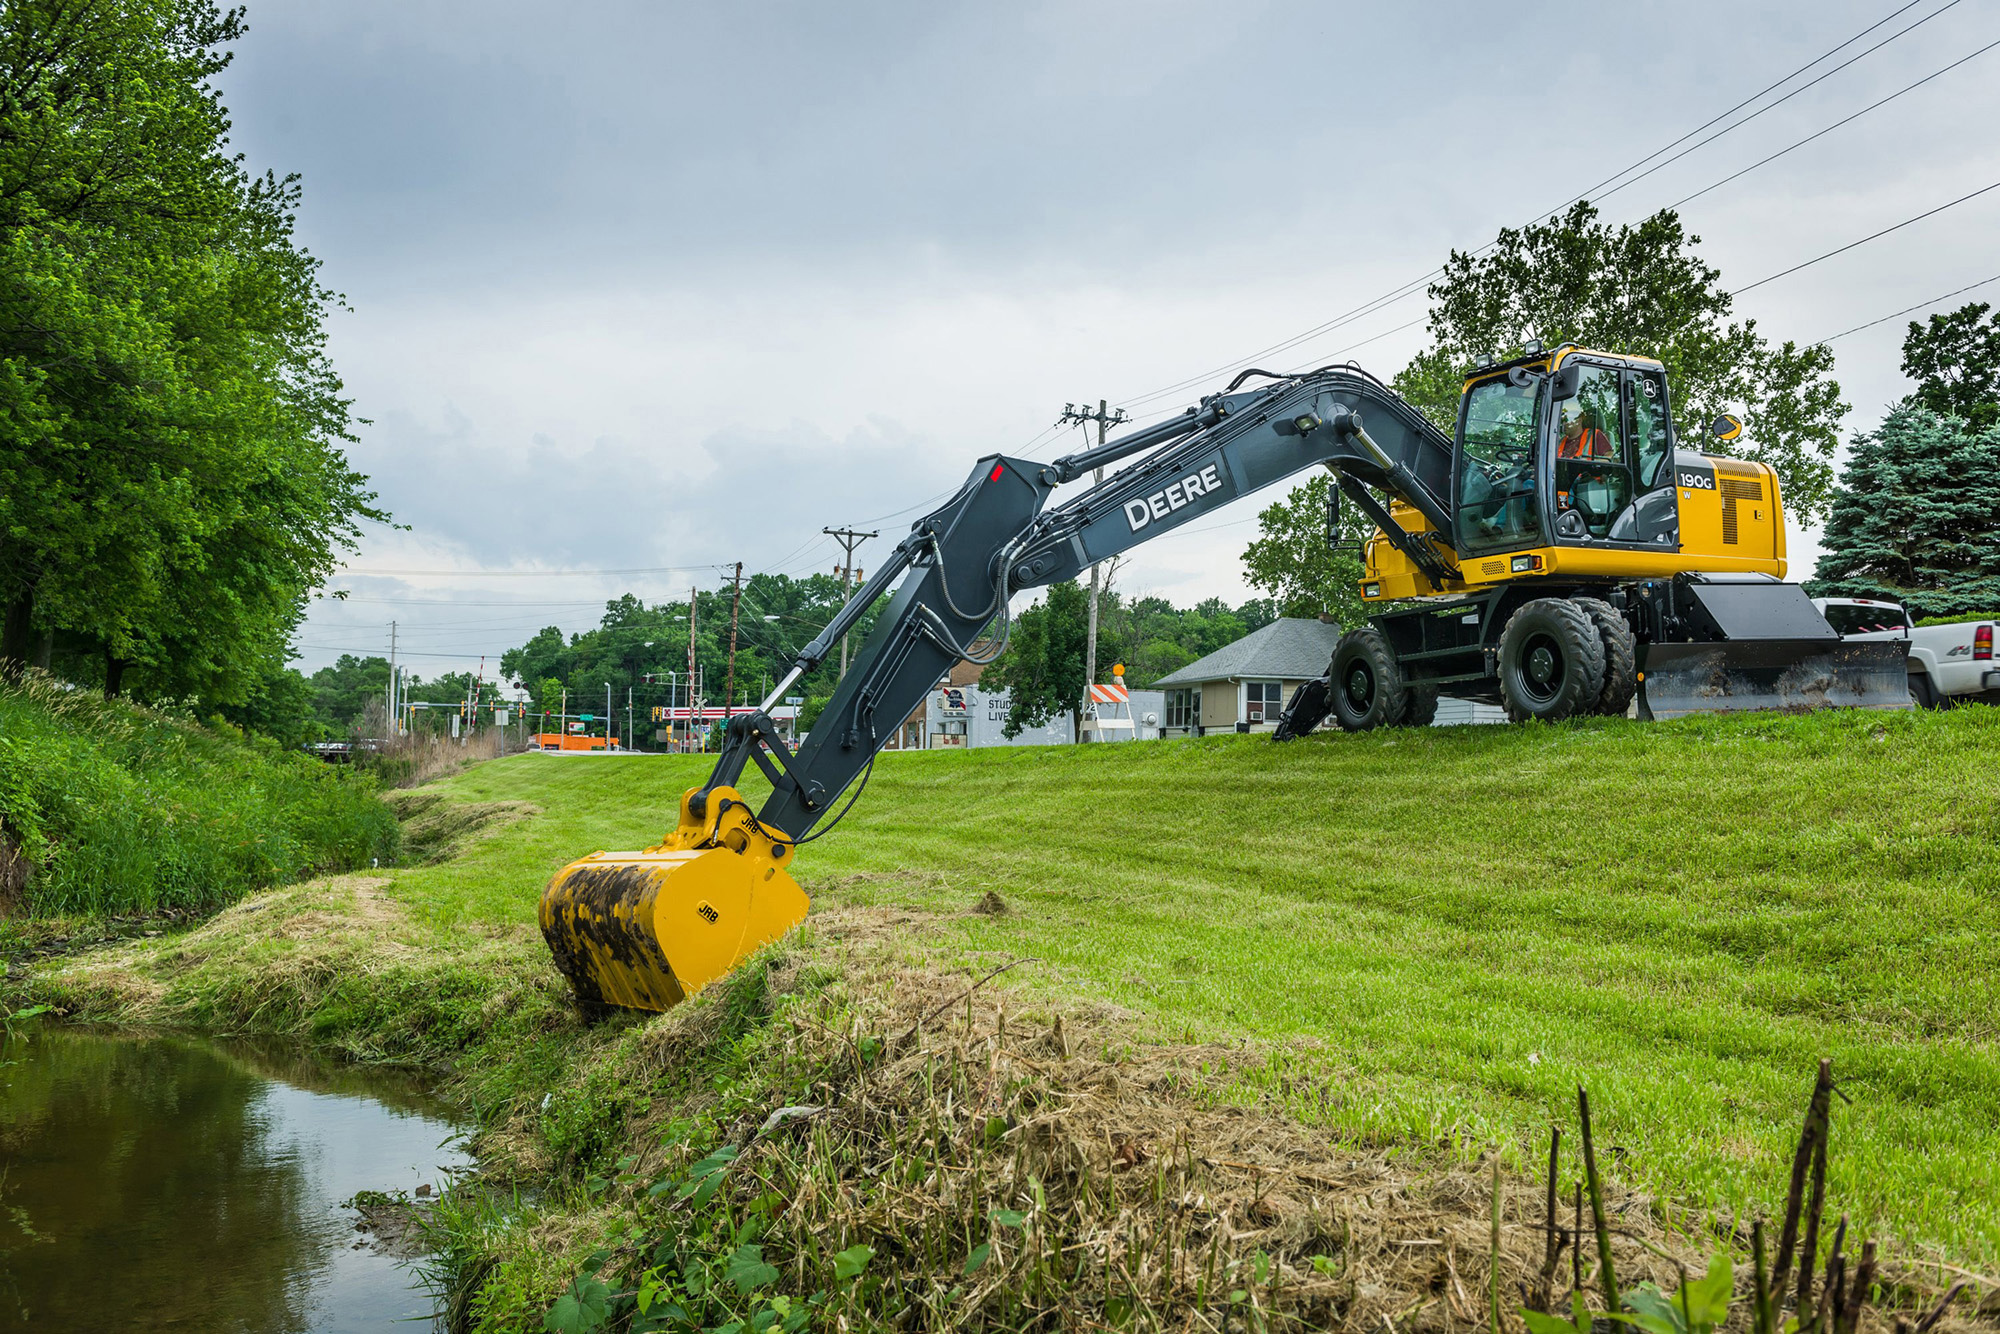 John Deere 190G W and 230G W Wheeled Excavators Bring Mobility to ...